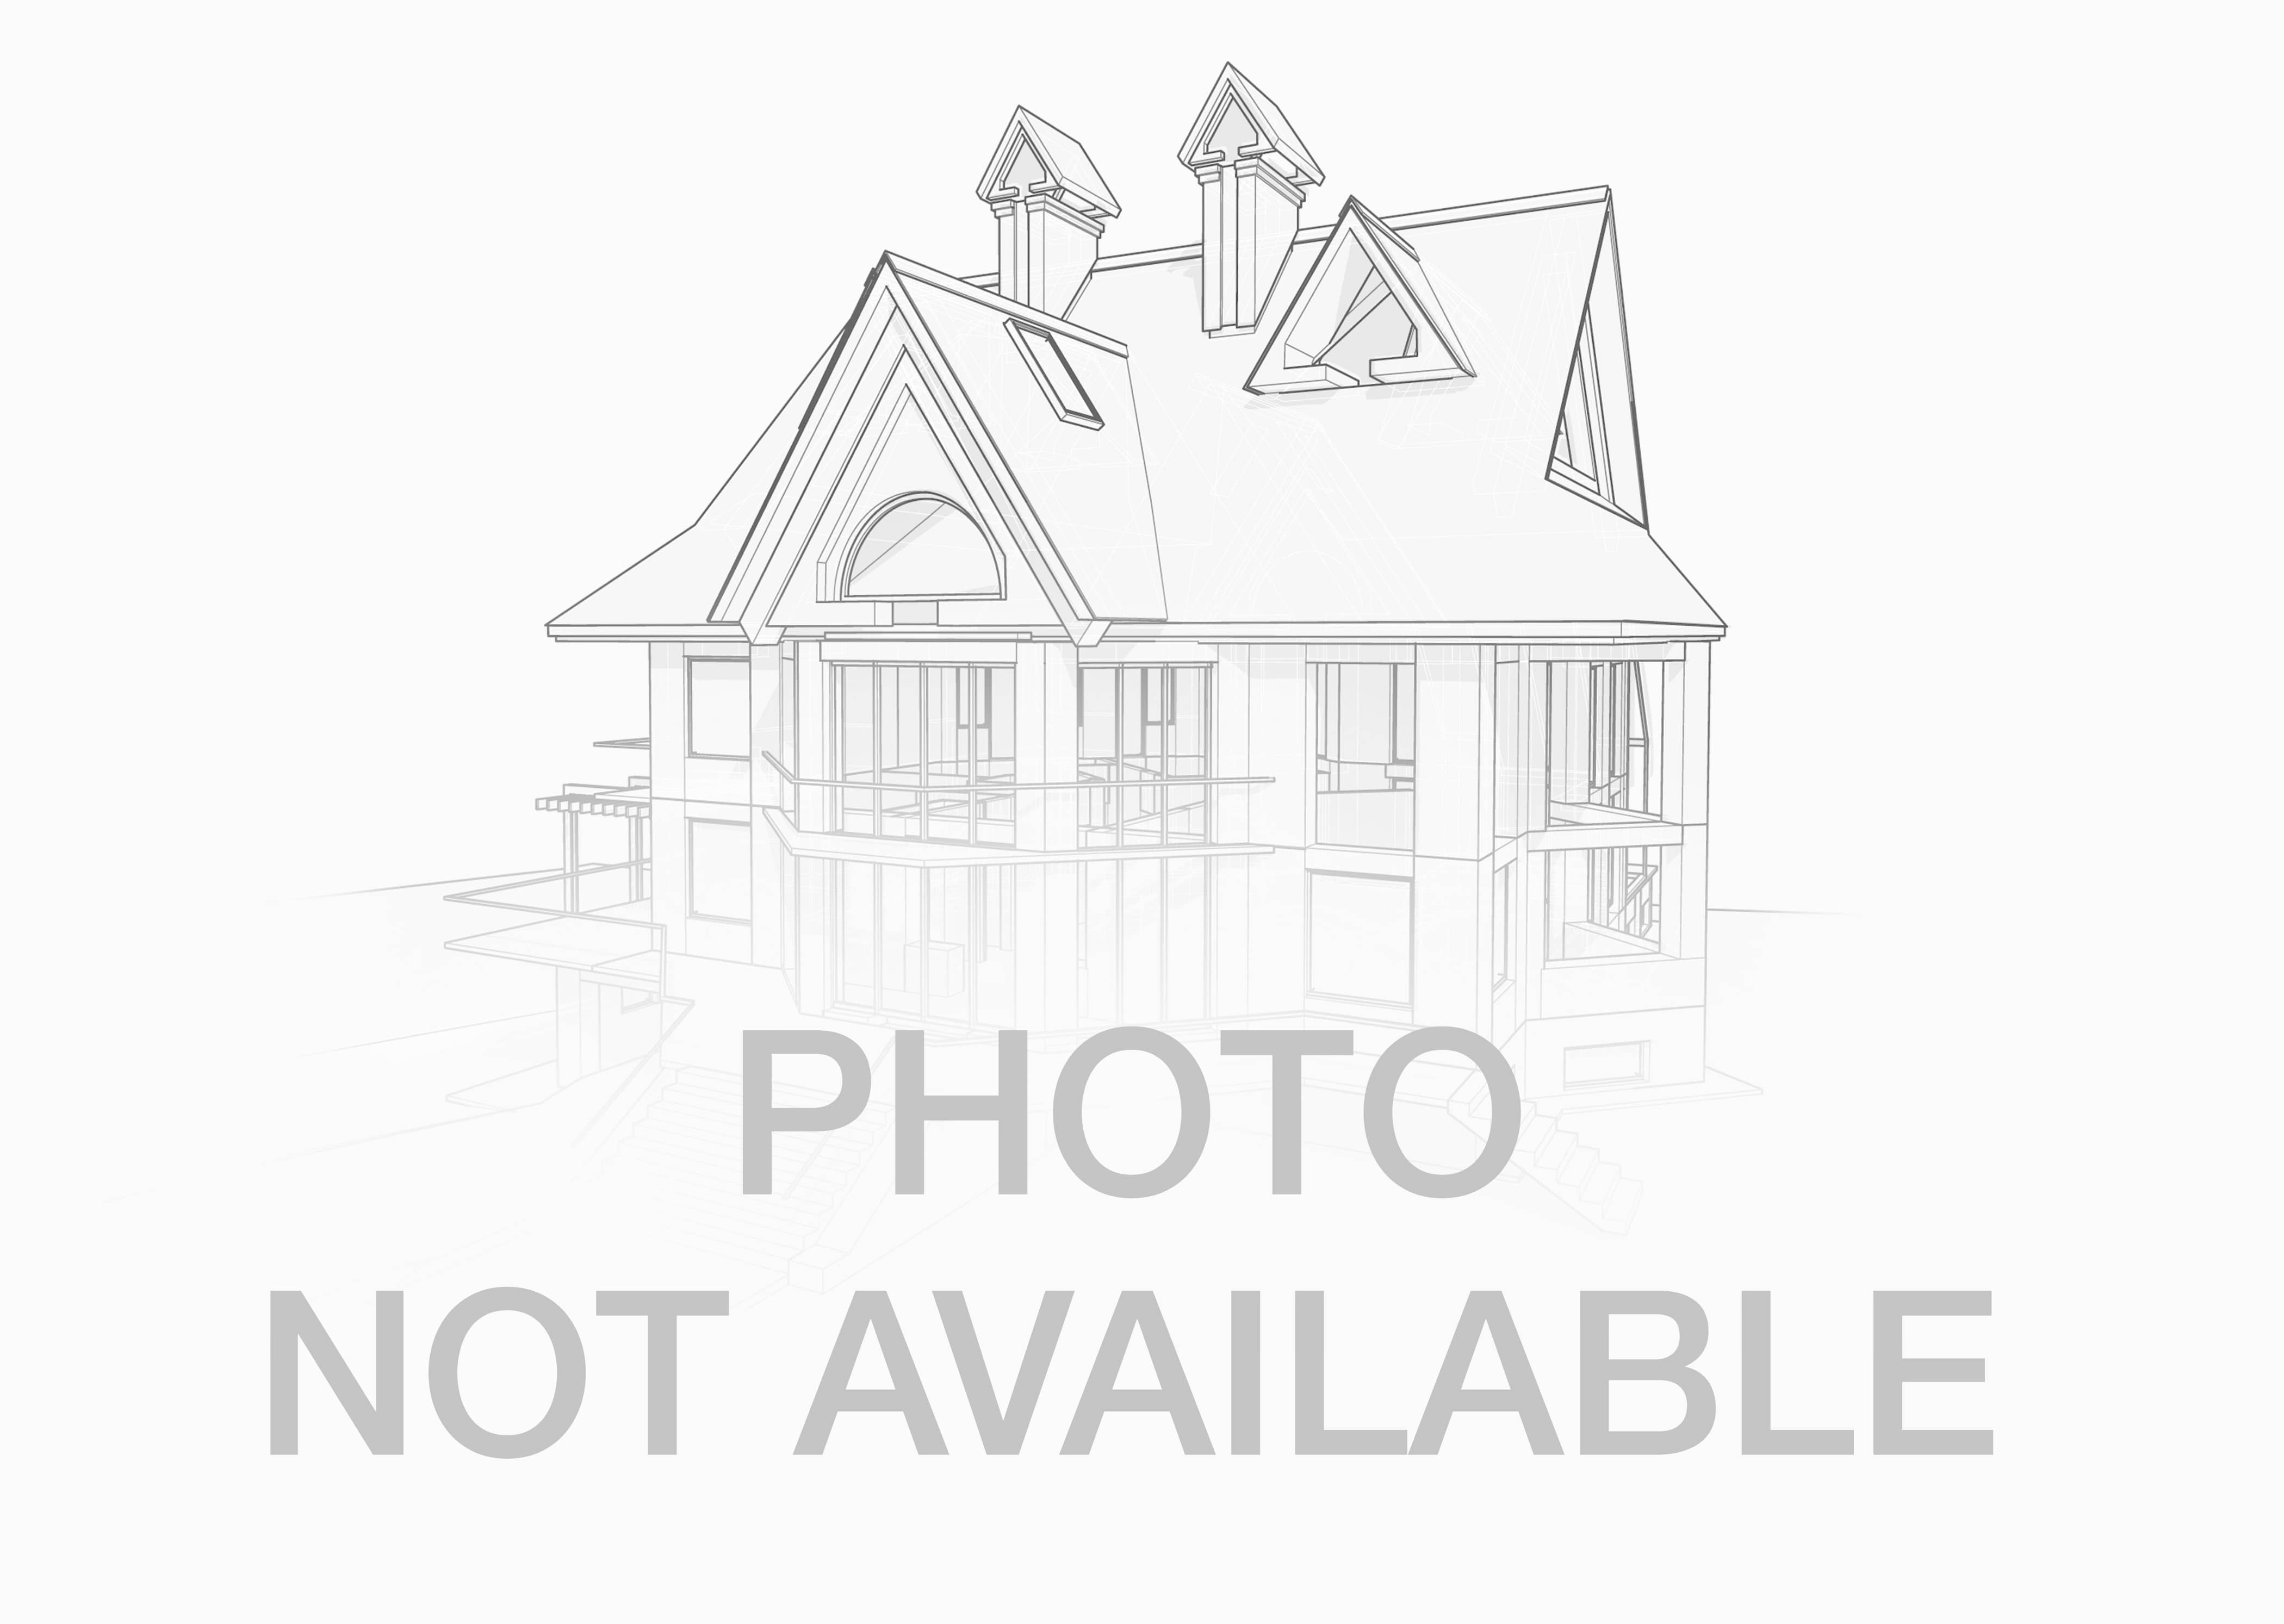 409 dungannon boulevard wilmington nc 28403 mls id 100230070 coldwell banker howard perry and walston 409 dungannon boulevard wilmington nc 28403